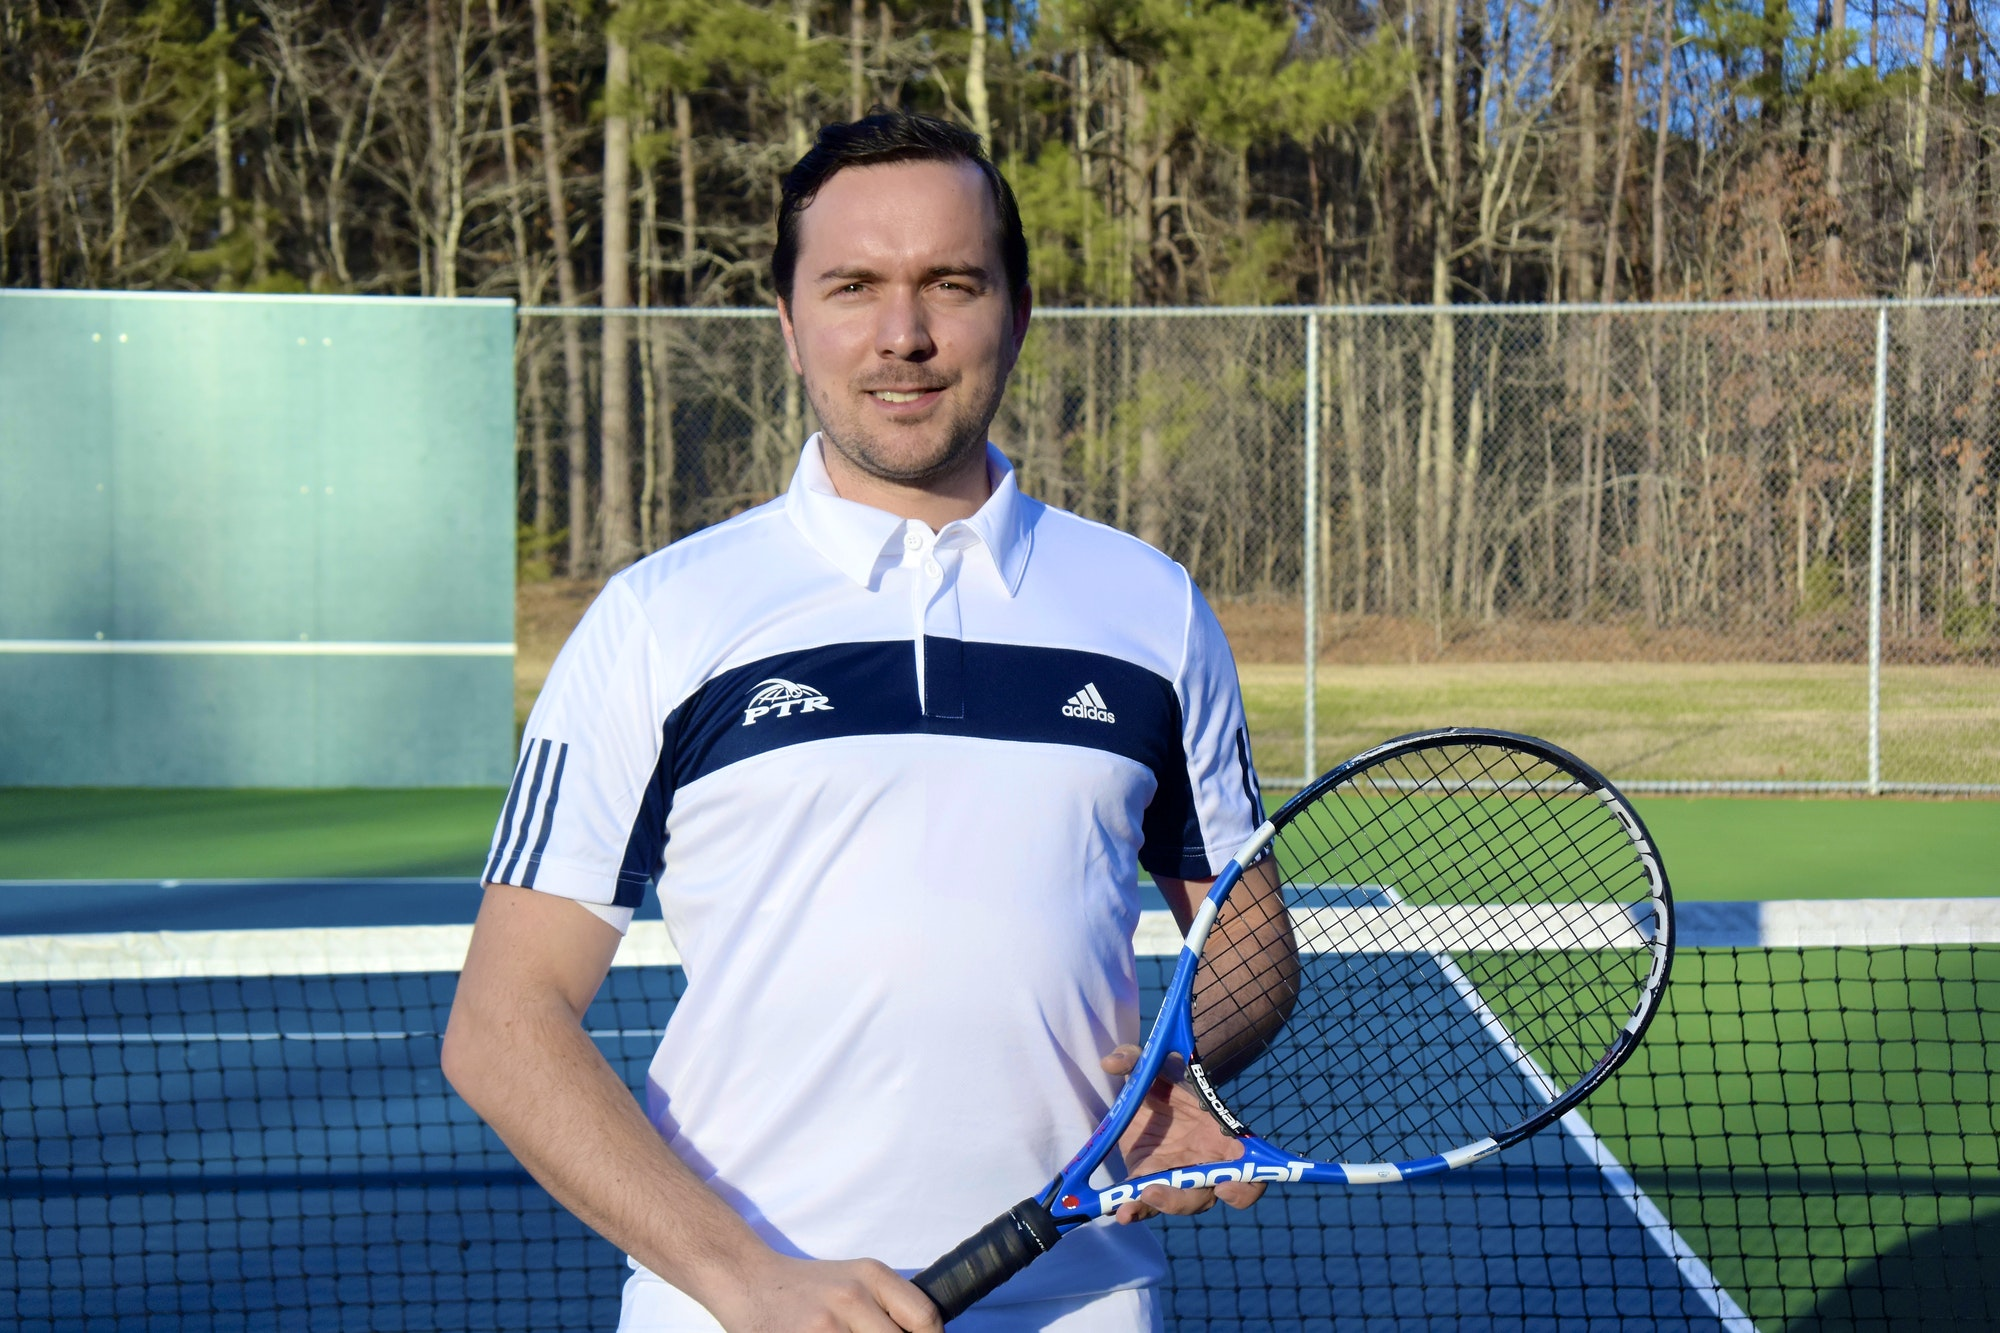 Alex H. teaches tennis lessons in Bentonville, AR